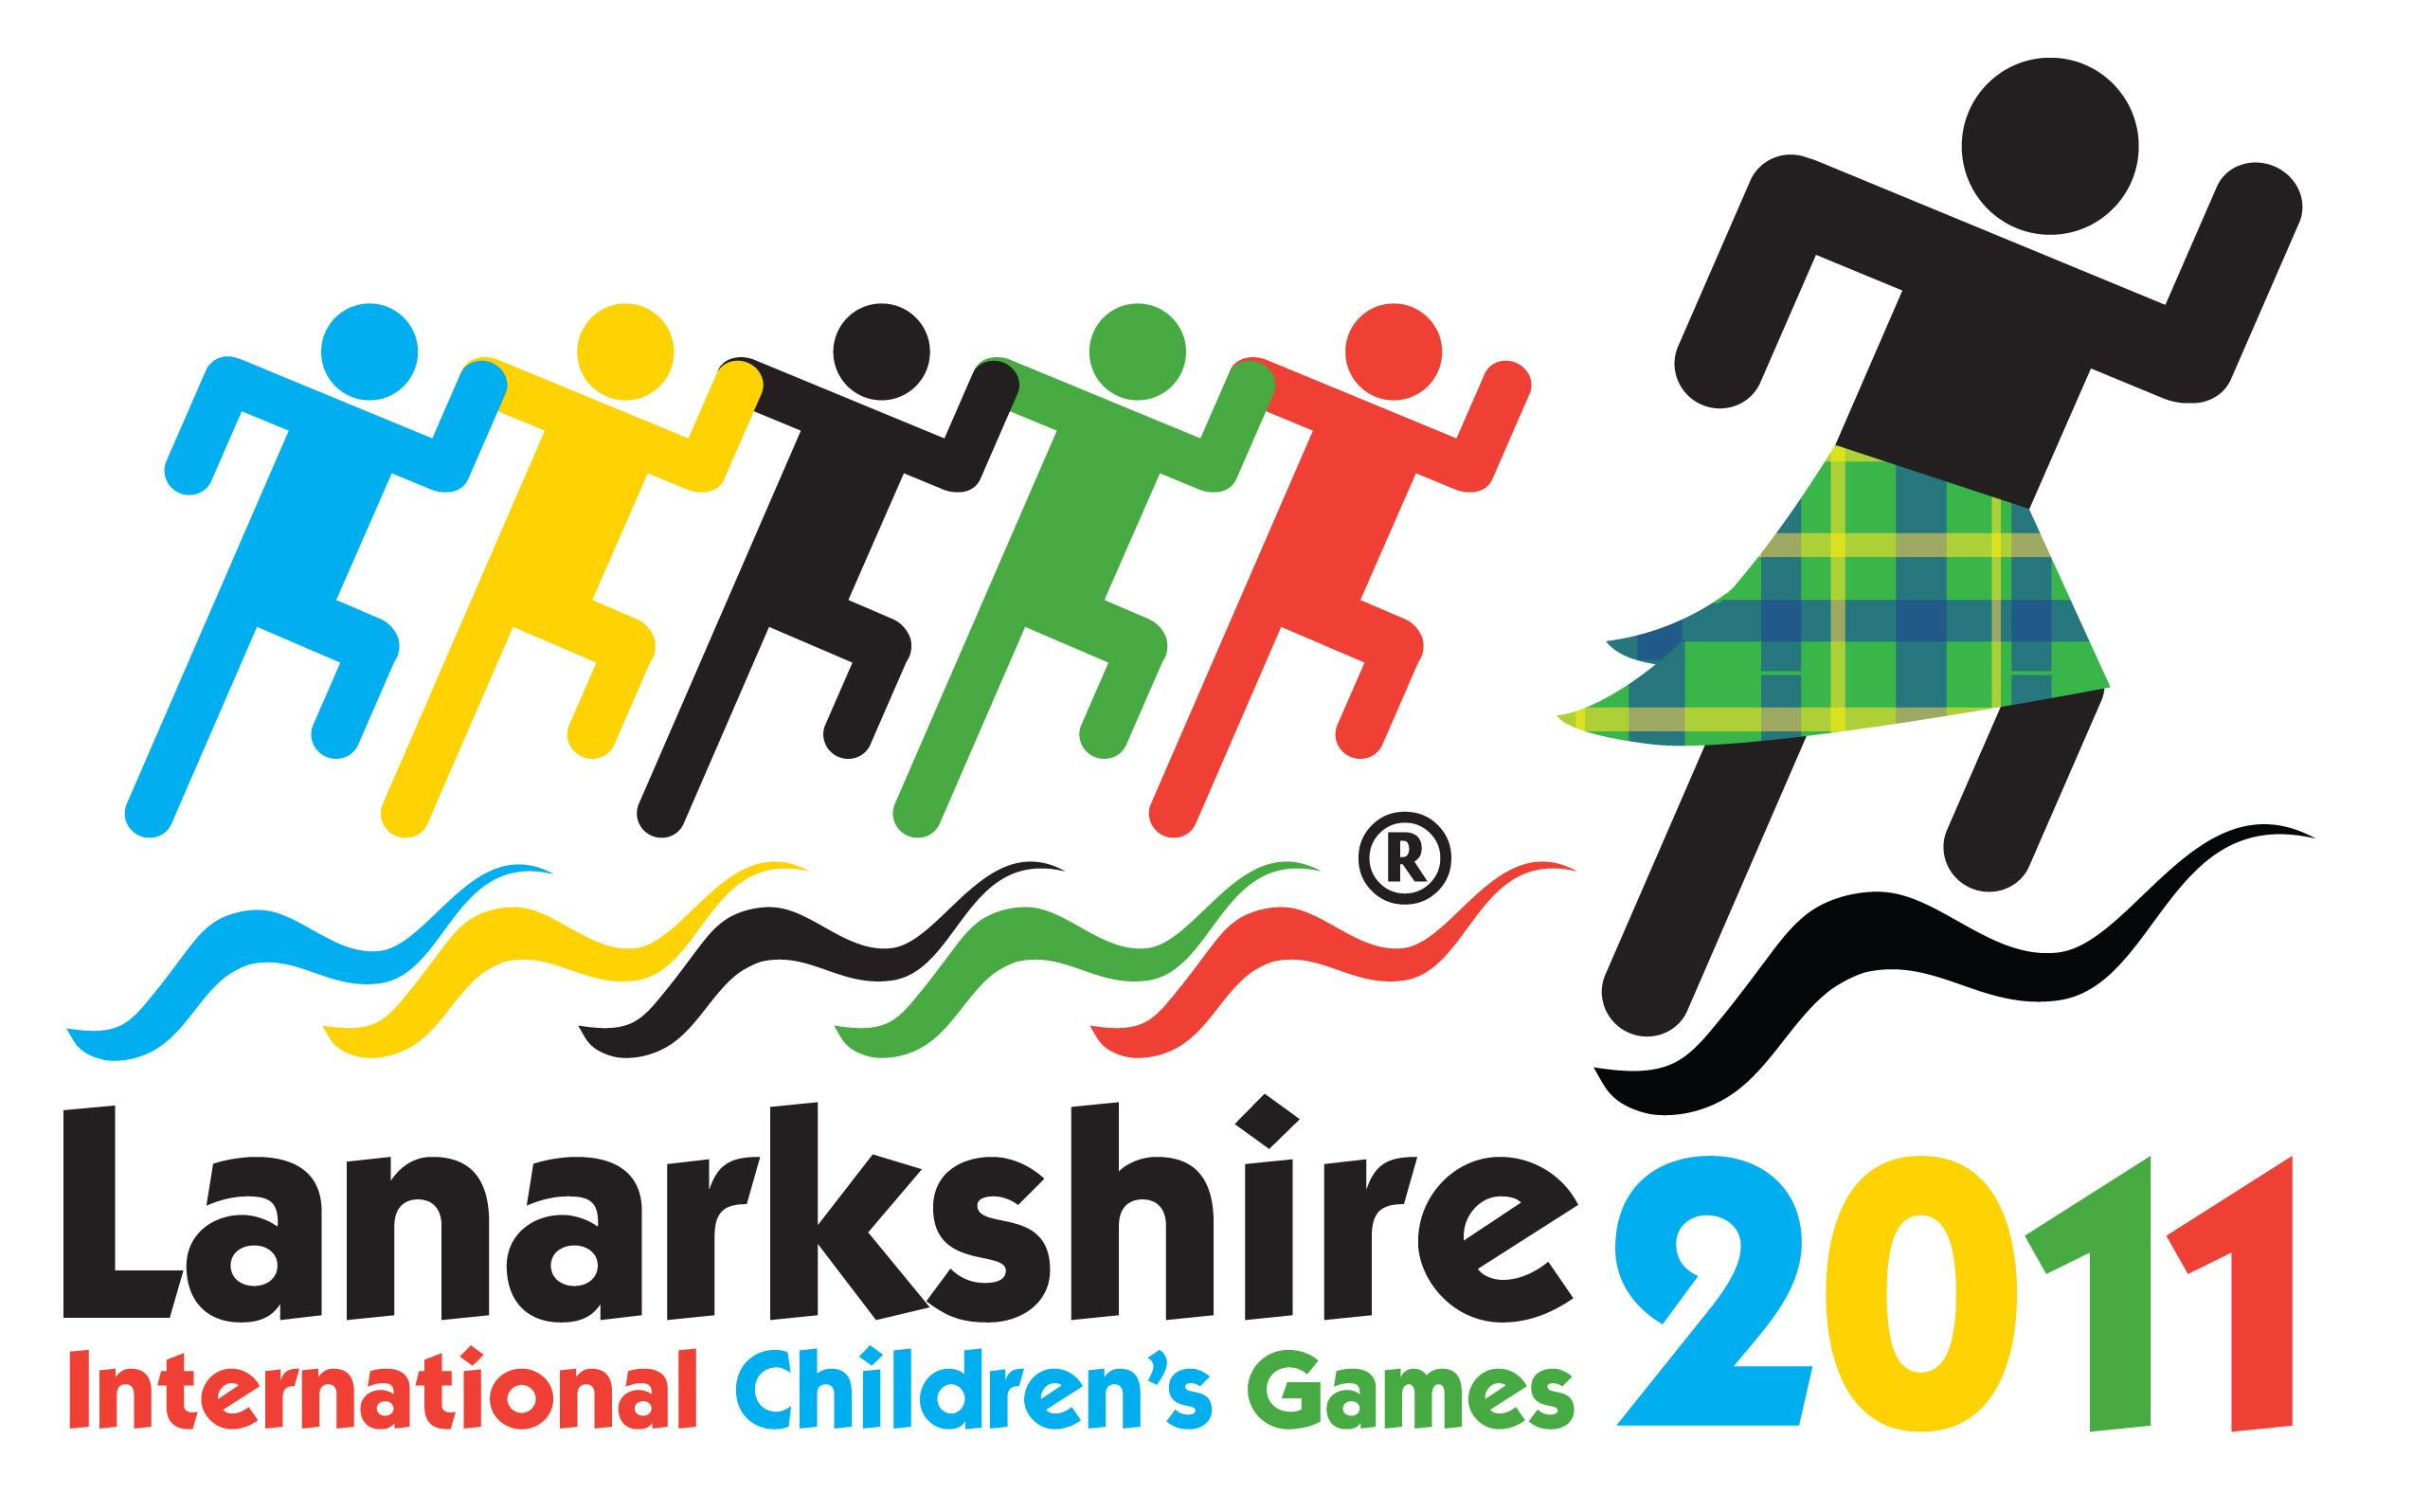 official logo for Lanarkshire 2011 International Children's Games